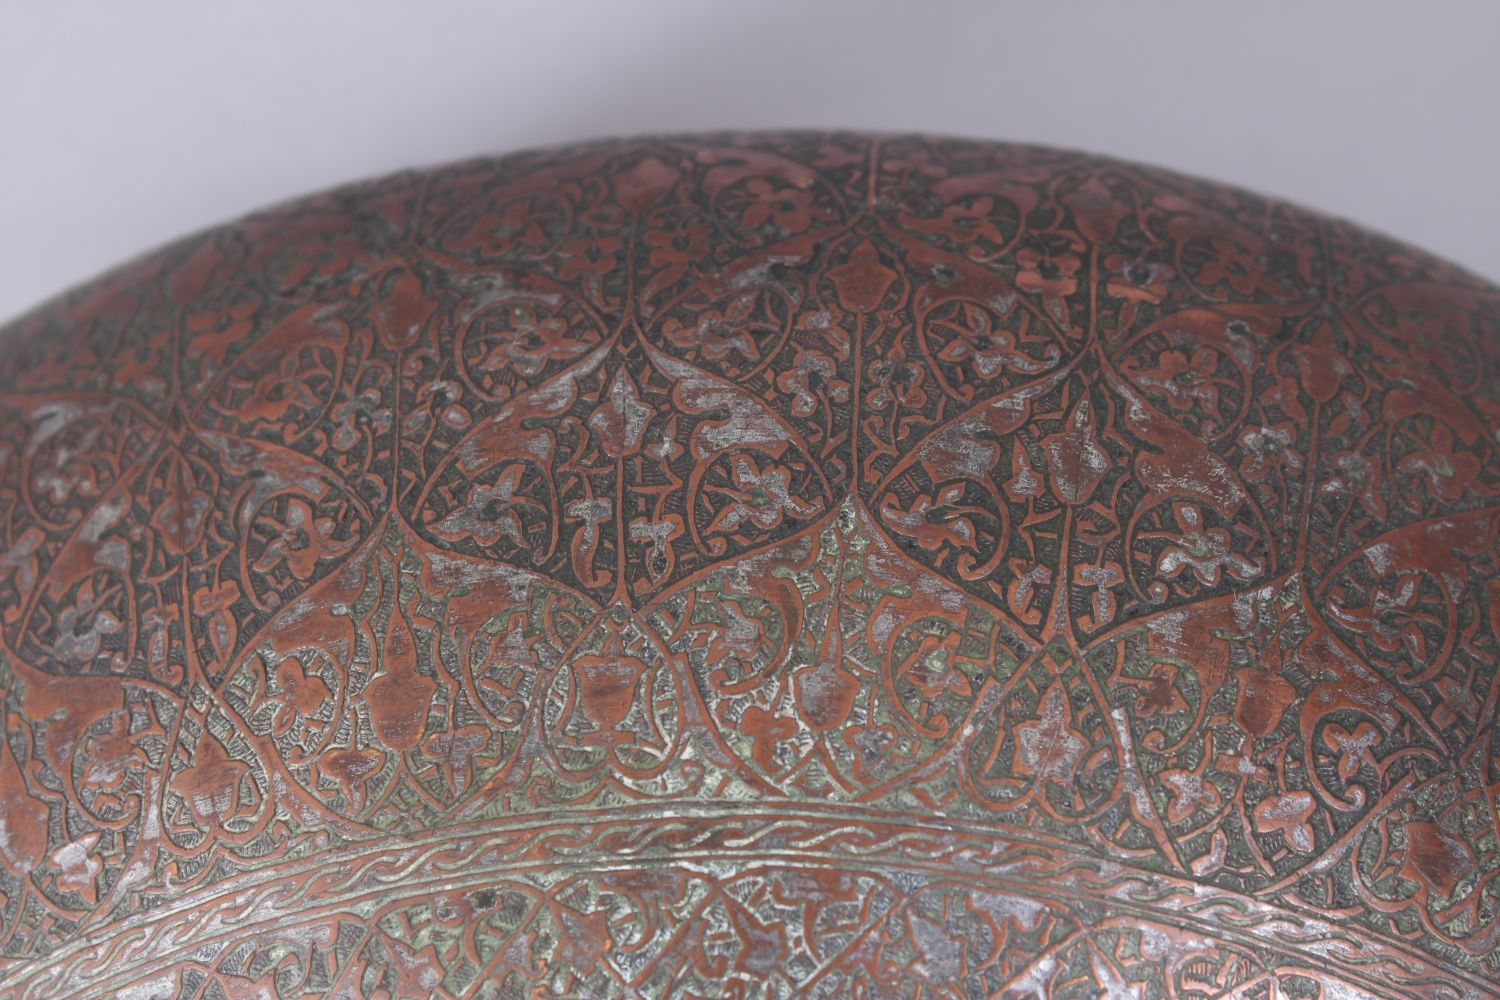 Lot 34 - A LARGE 18TH - 19TH CENTURY INDO PERSIAN ENGRAVED COPPER BOWL.